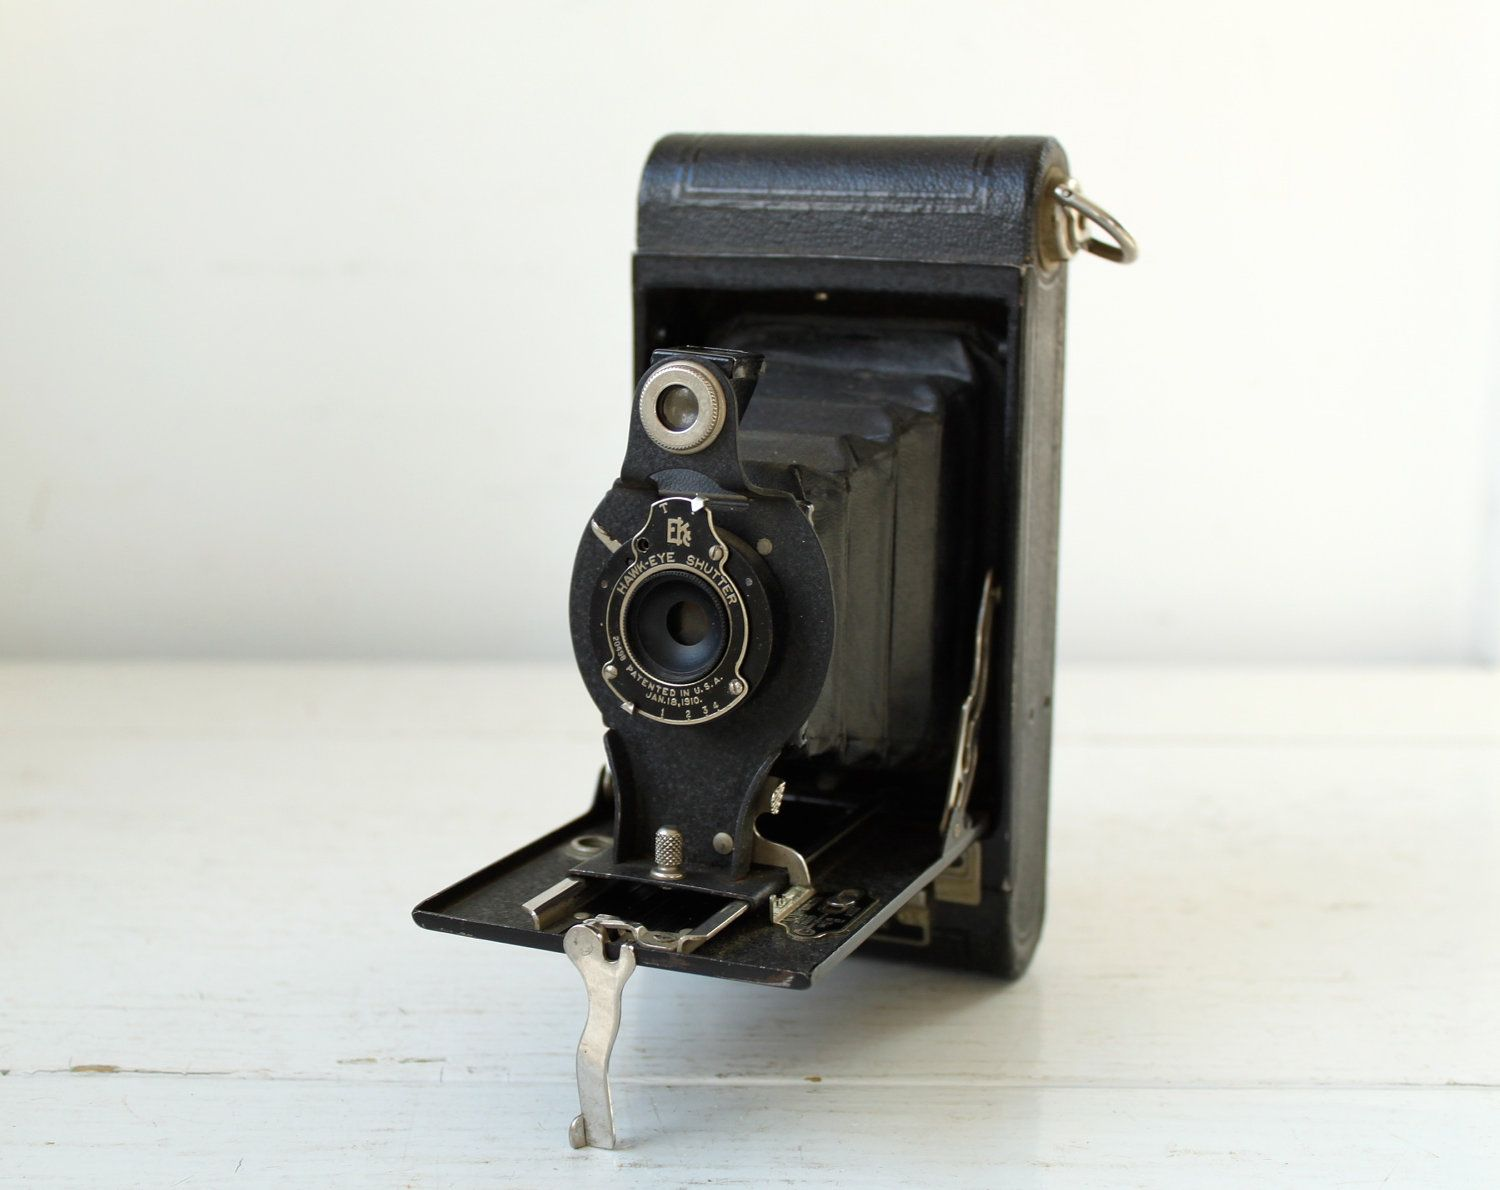 Vintage 1920s 1930s kodak camera the hawk eye no 2 model c vintage 1920s 1930s kodak camera the hawk eye no 2 model c fandeluxe Gallery